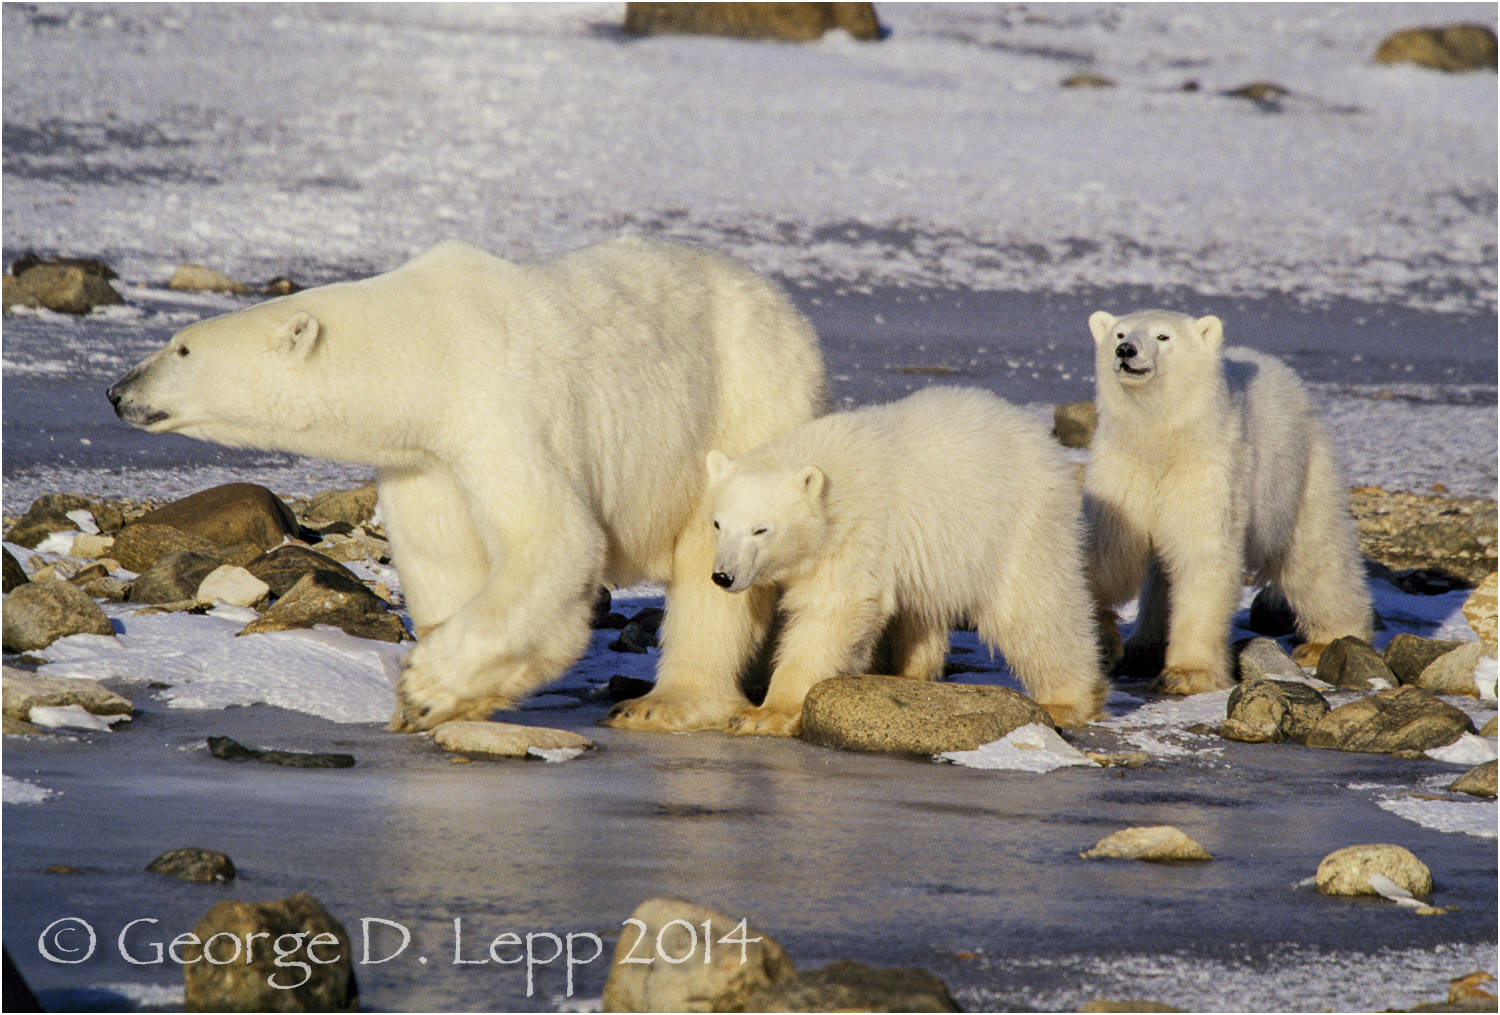 Polar Bear with cubs at edge of Hudson Bay, Manitoba, Canada. © George D. Lepp 2014  M-BE-PO-0067